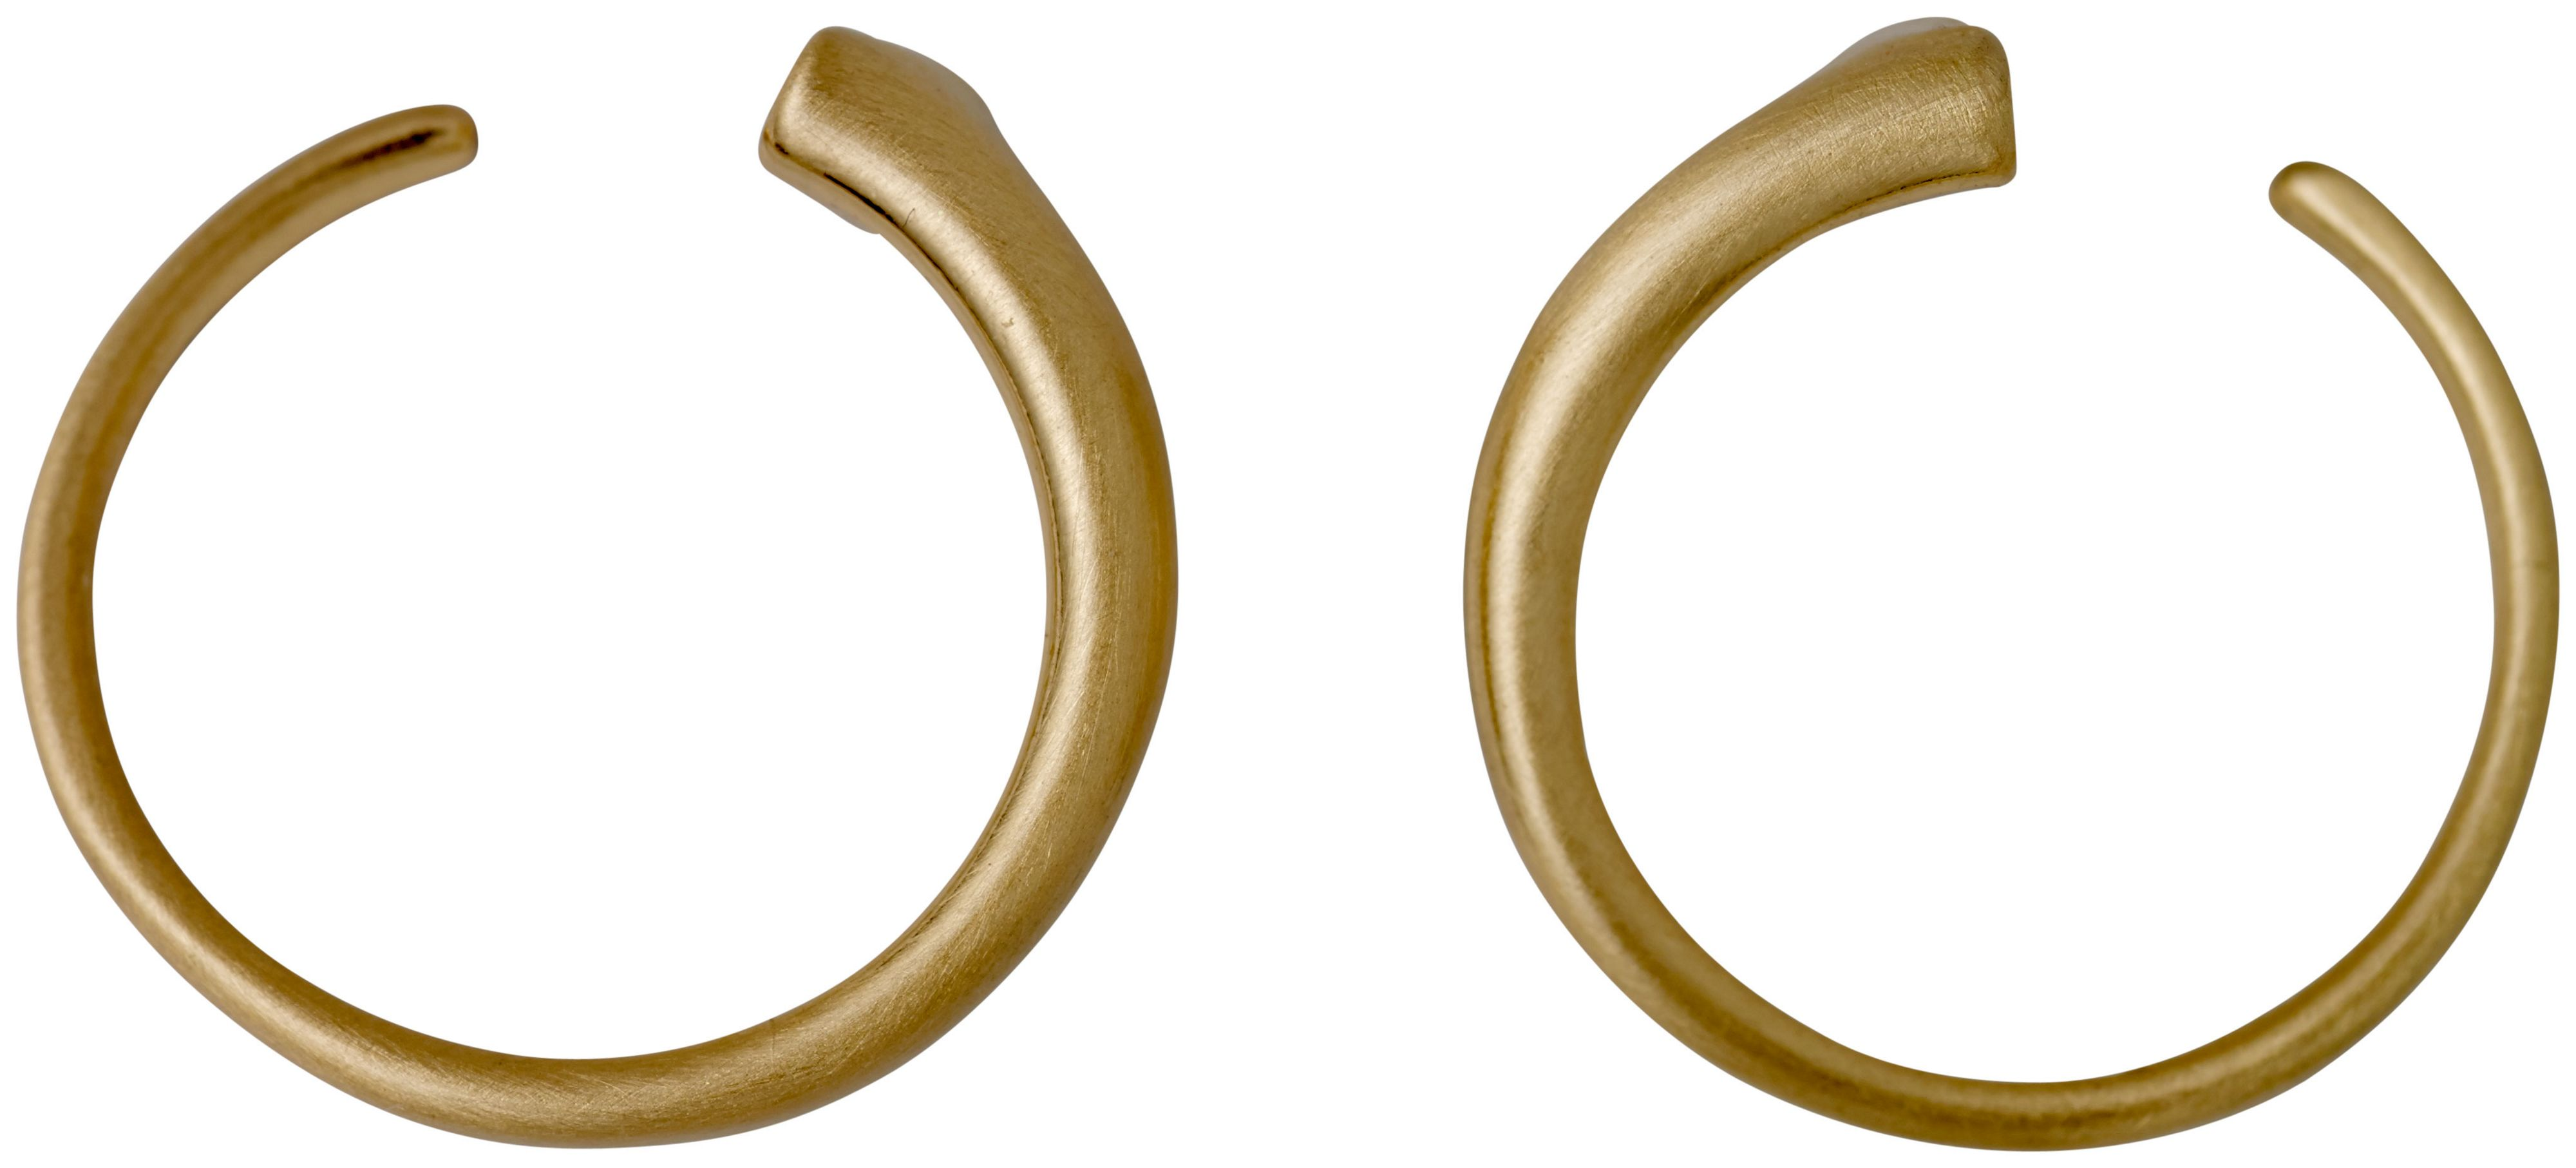 Pilgrim Gorgeous Gold Plated Round Earrings, Gold